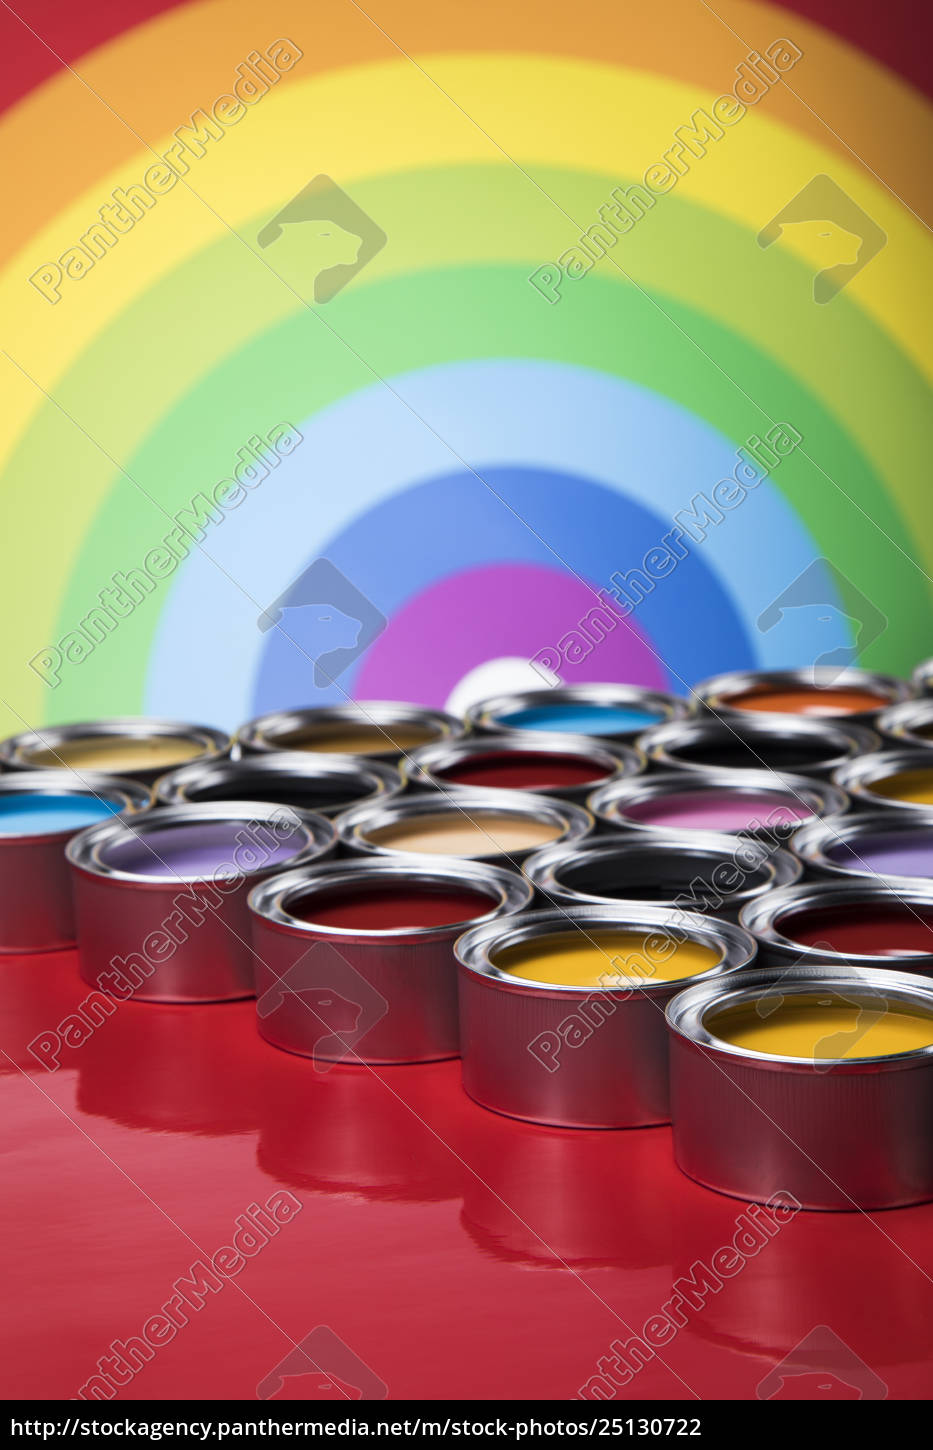 rainbow, colors, , open, cans, of, paint - 25130722